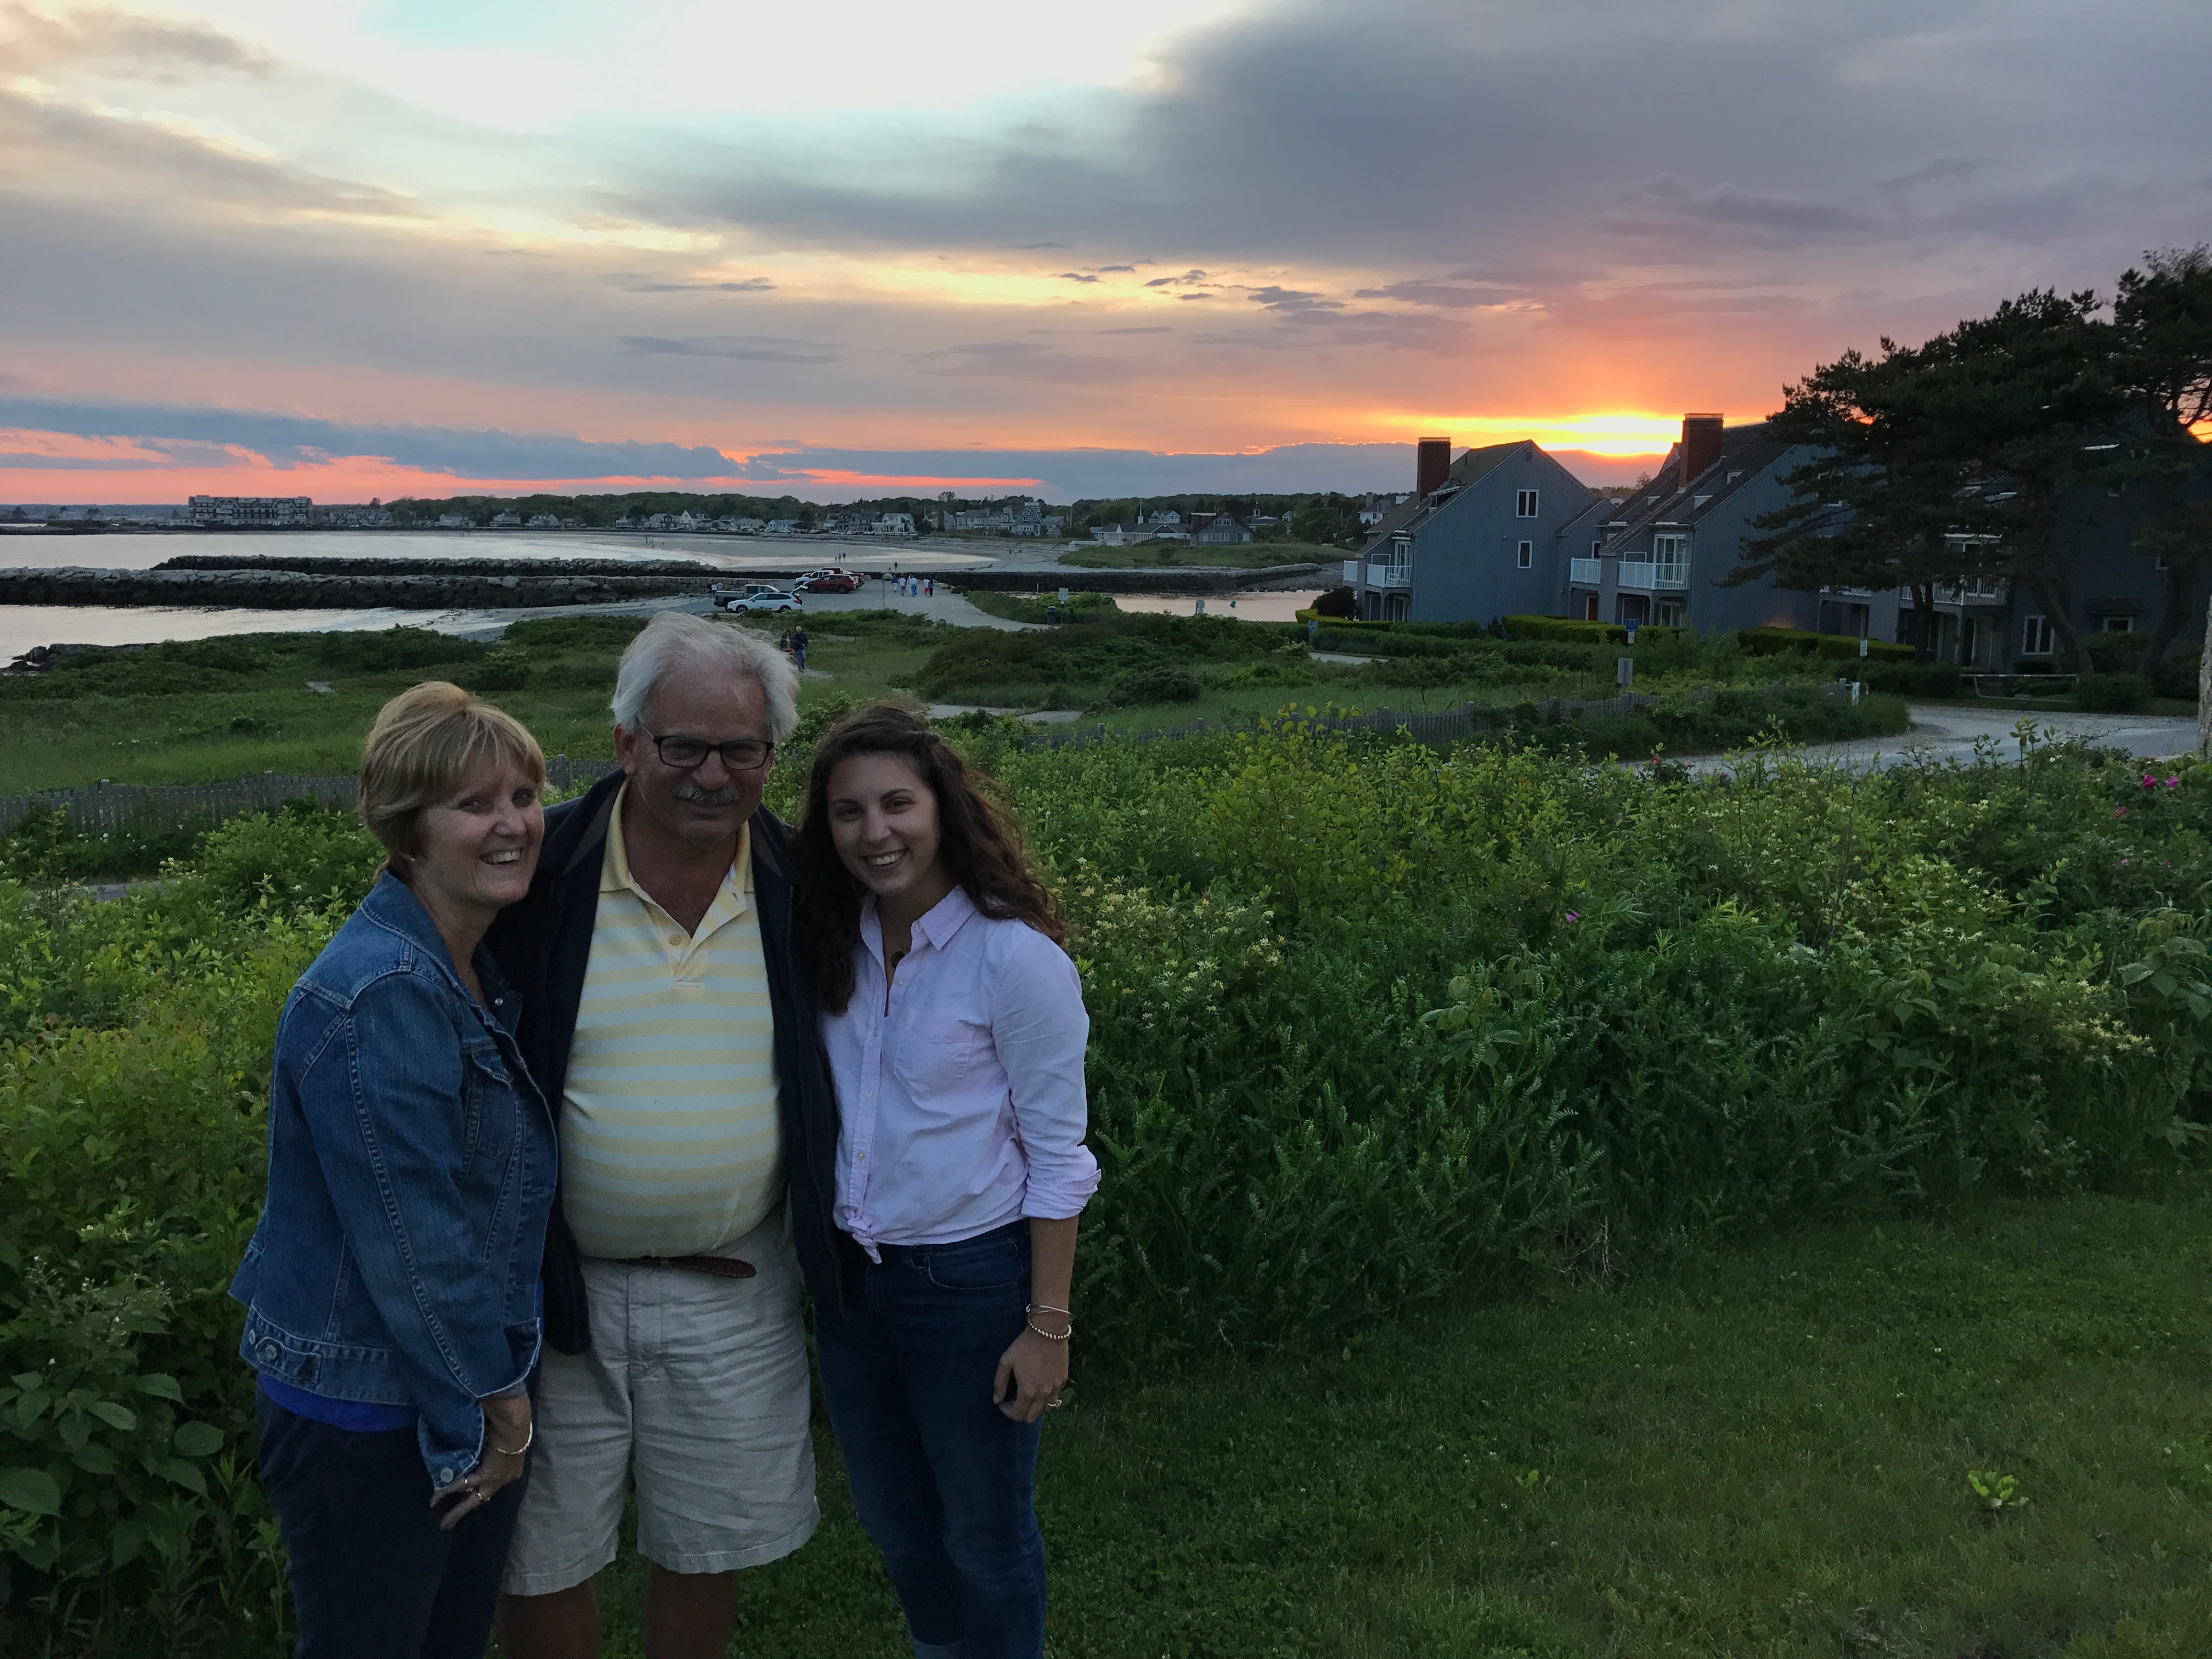 Travel Blogger Carly Totten shares how to spend 48 hours in Kennebunkport and Portland, Maine! | www.carlyisinspired.com